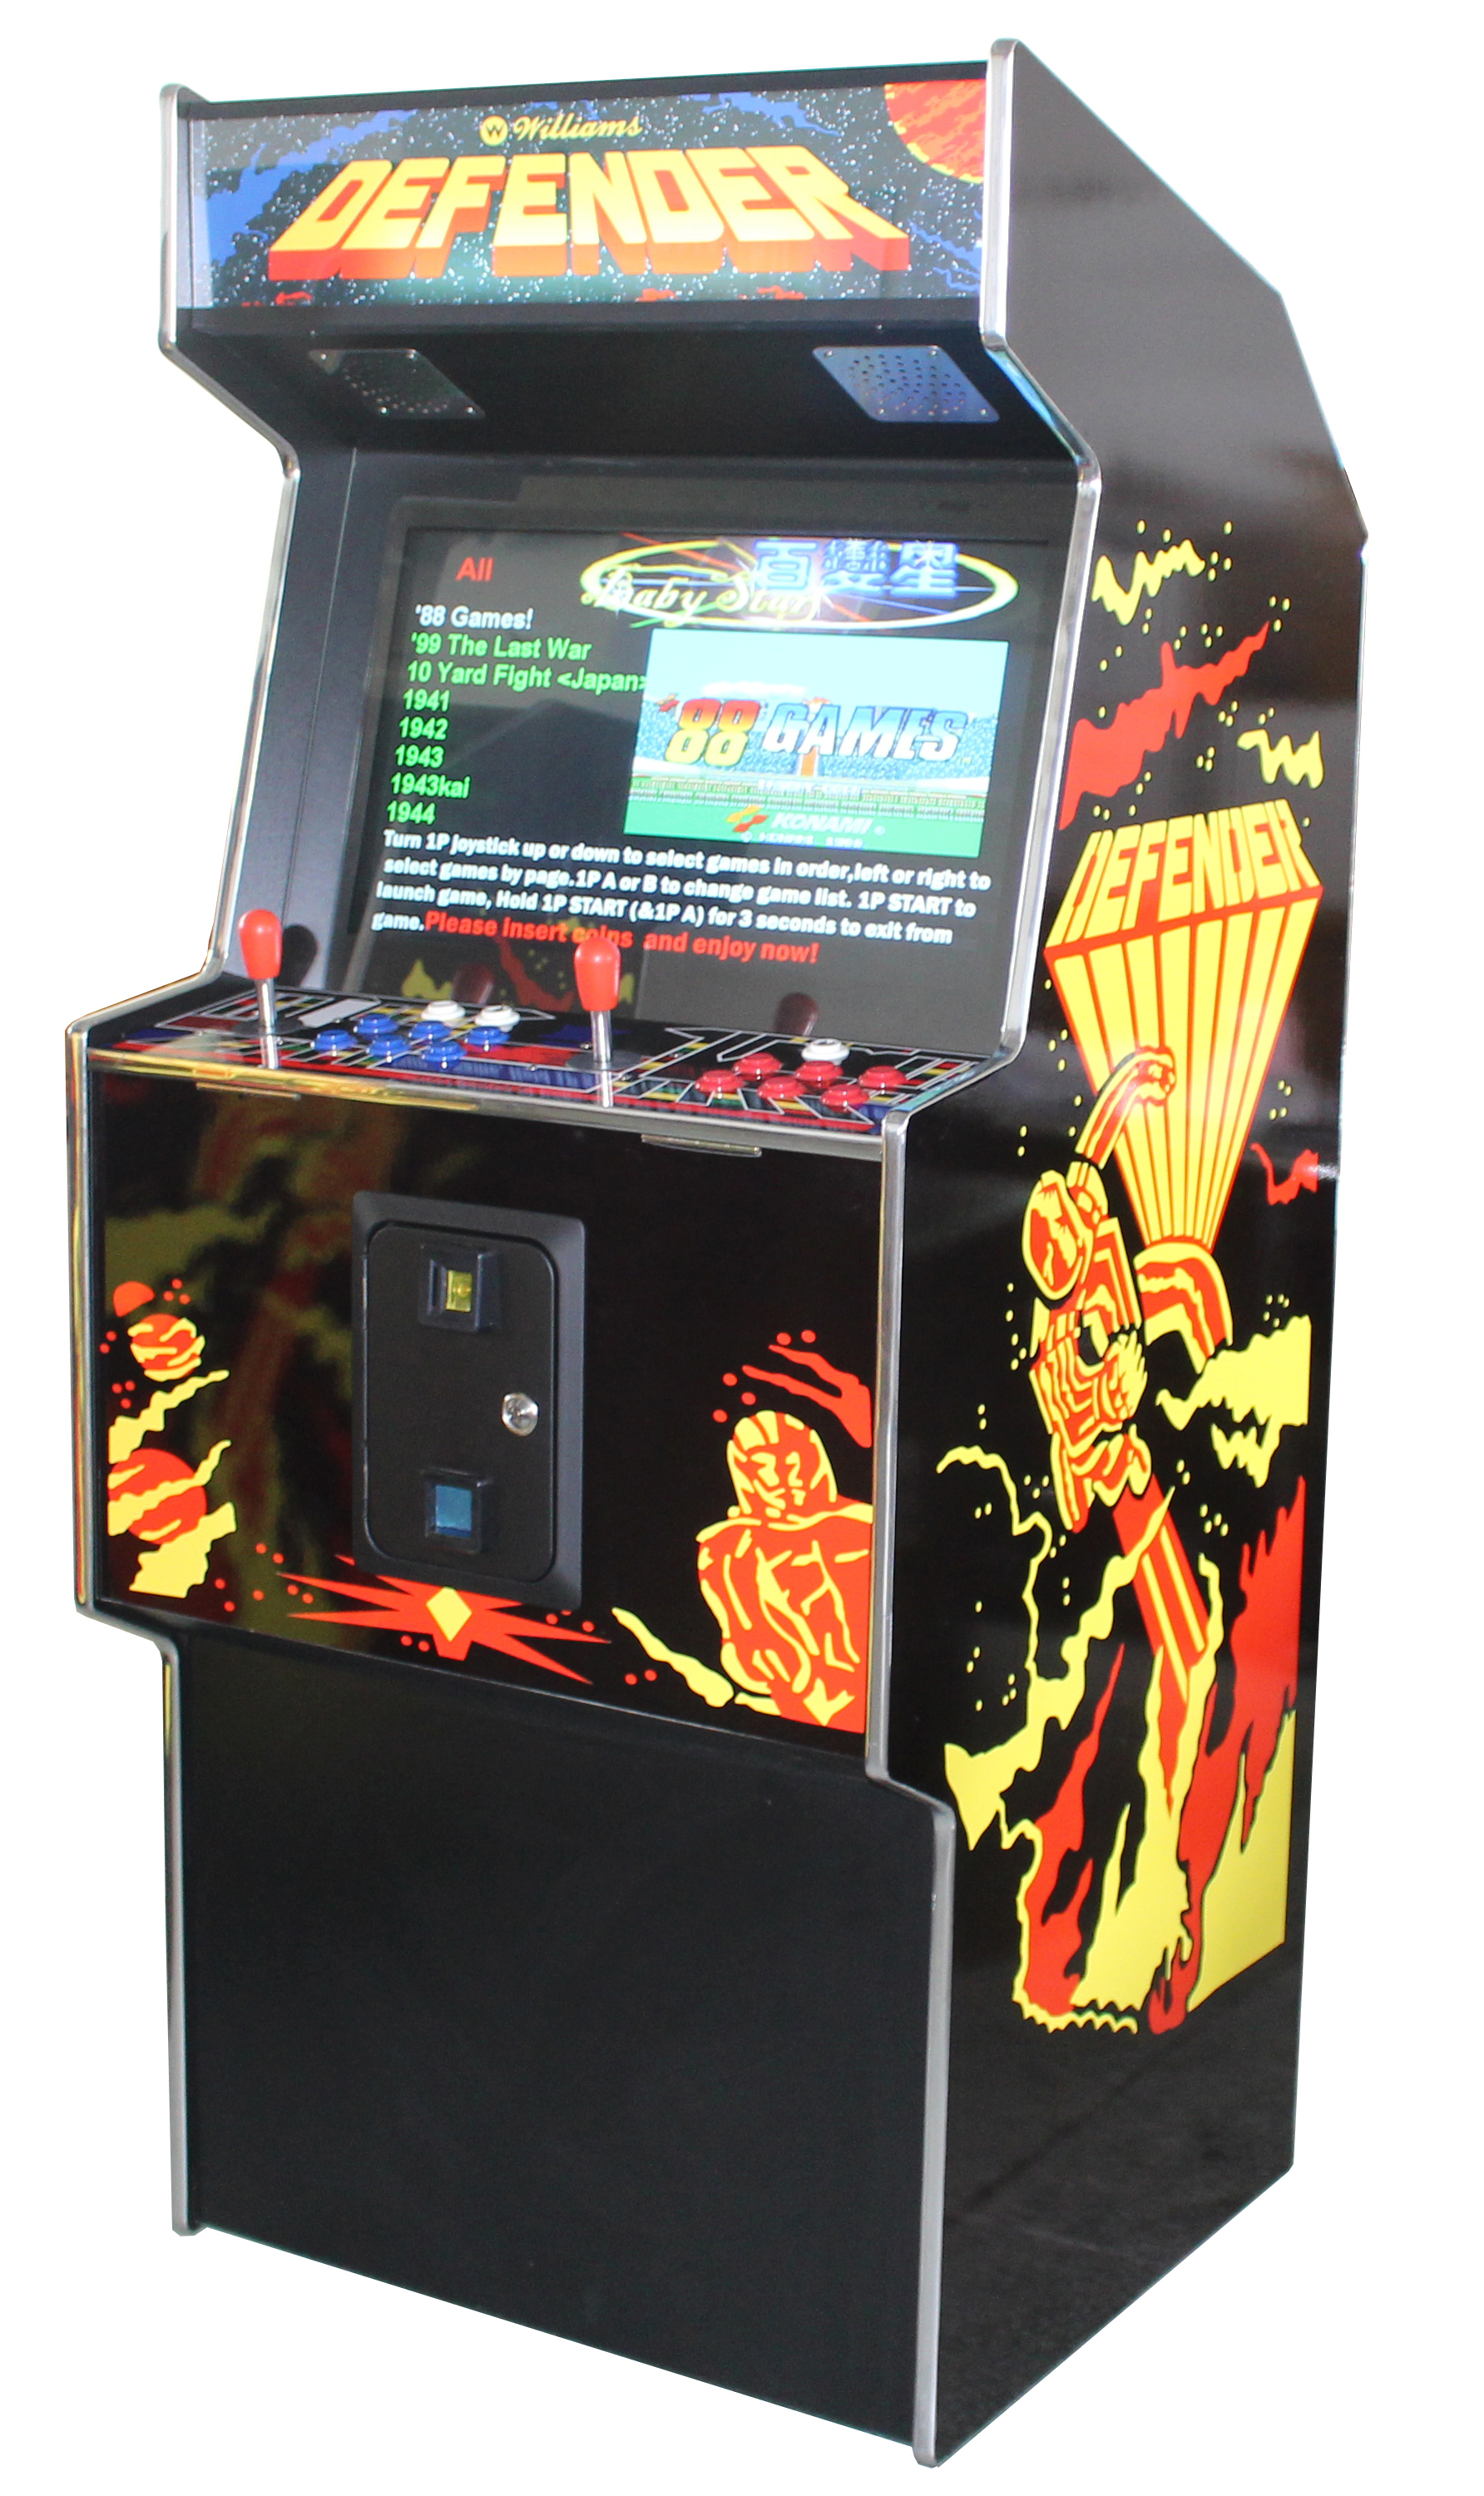 Arcade Rewind 3500 in 1 Upright Arcade Machine Defender